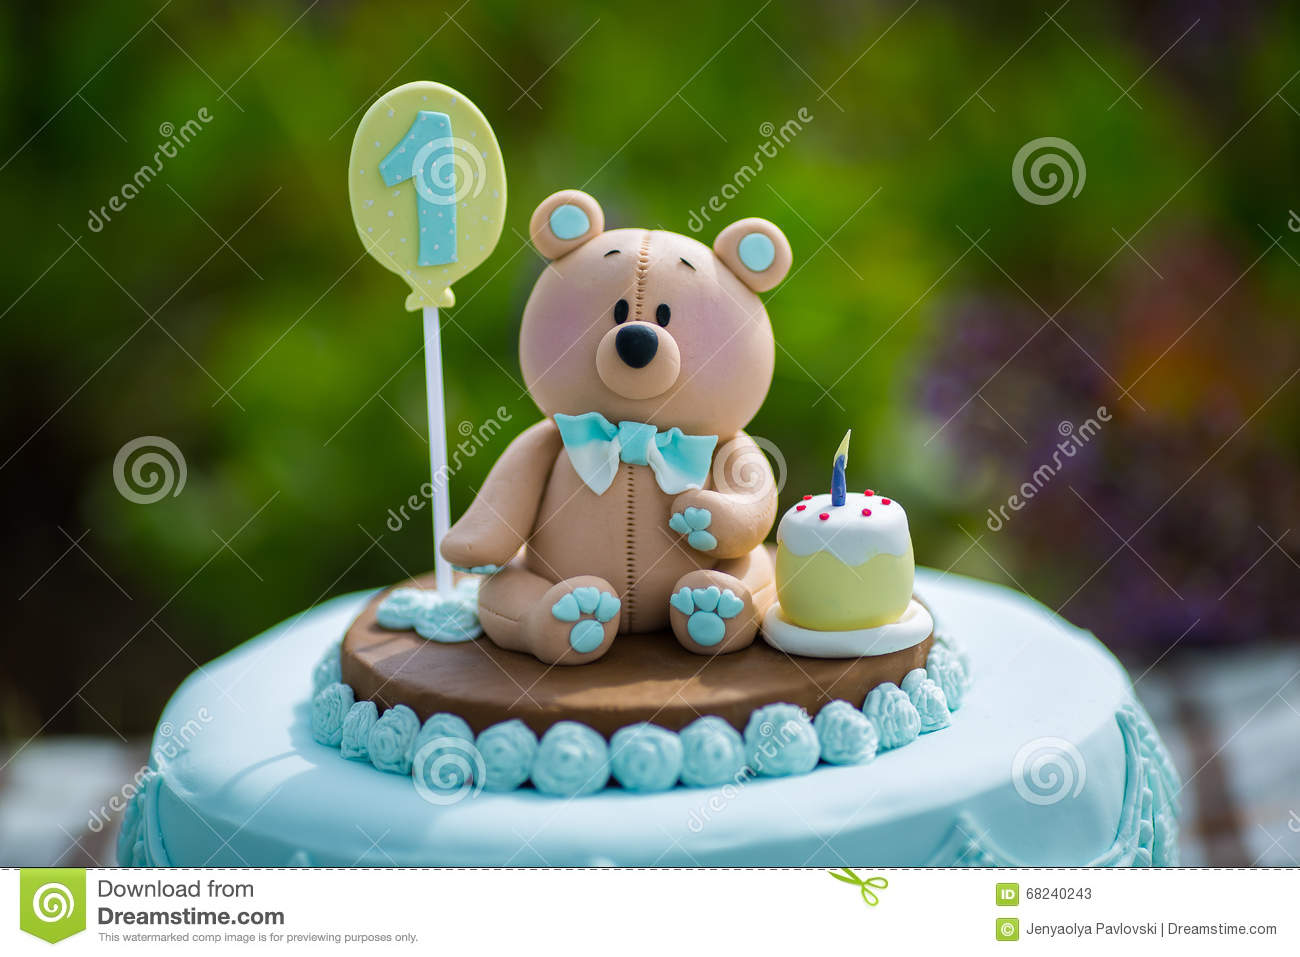 Pleasant Bear Cake Stock Image Image Of Bear First Concept 68240243 Funny Birthday Cards Online Alyptdamsfinfo